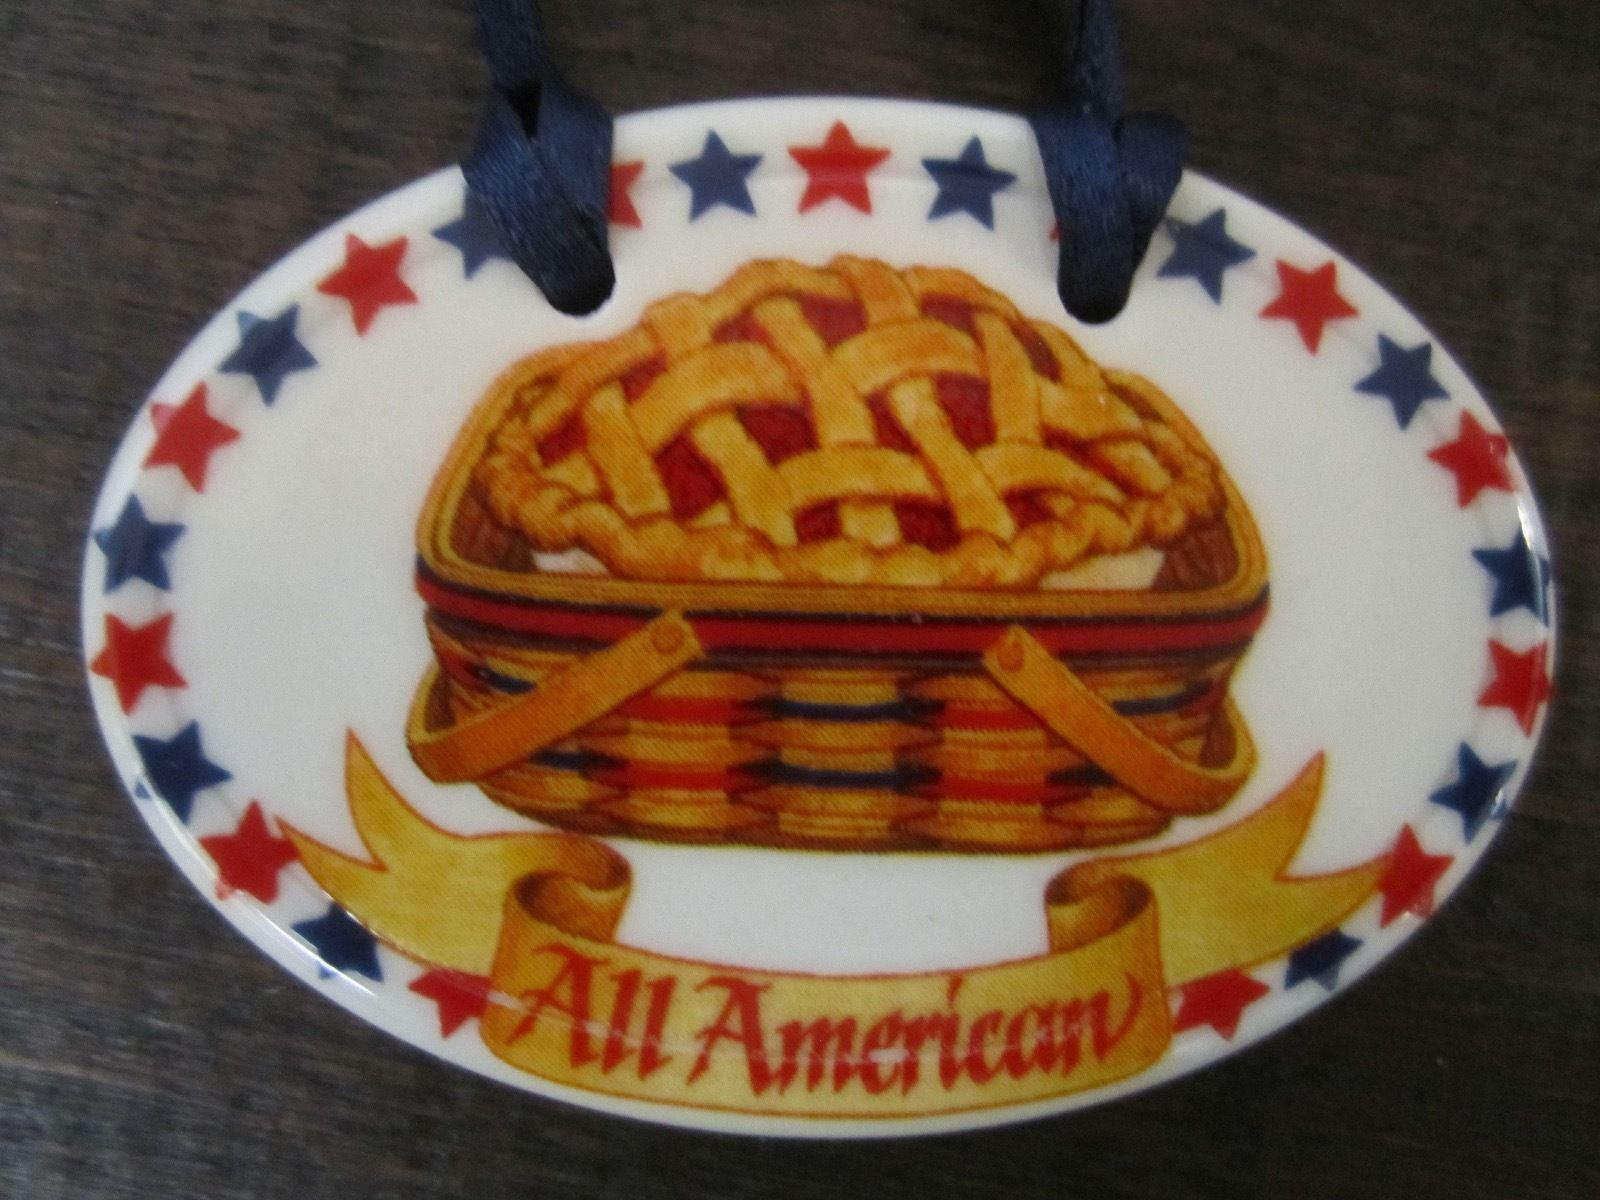 Longaberger 1998 All American Oval Pottery Basket Tie On Made in the USA